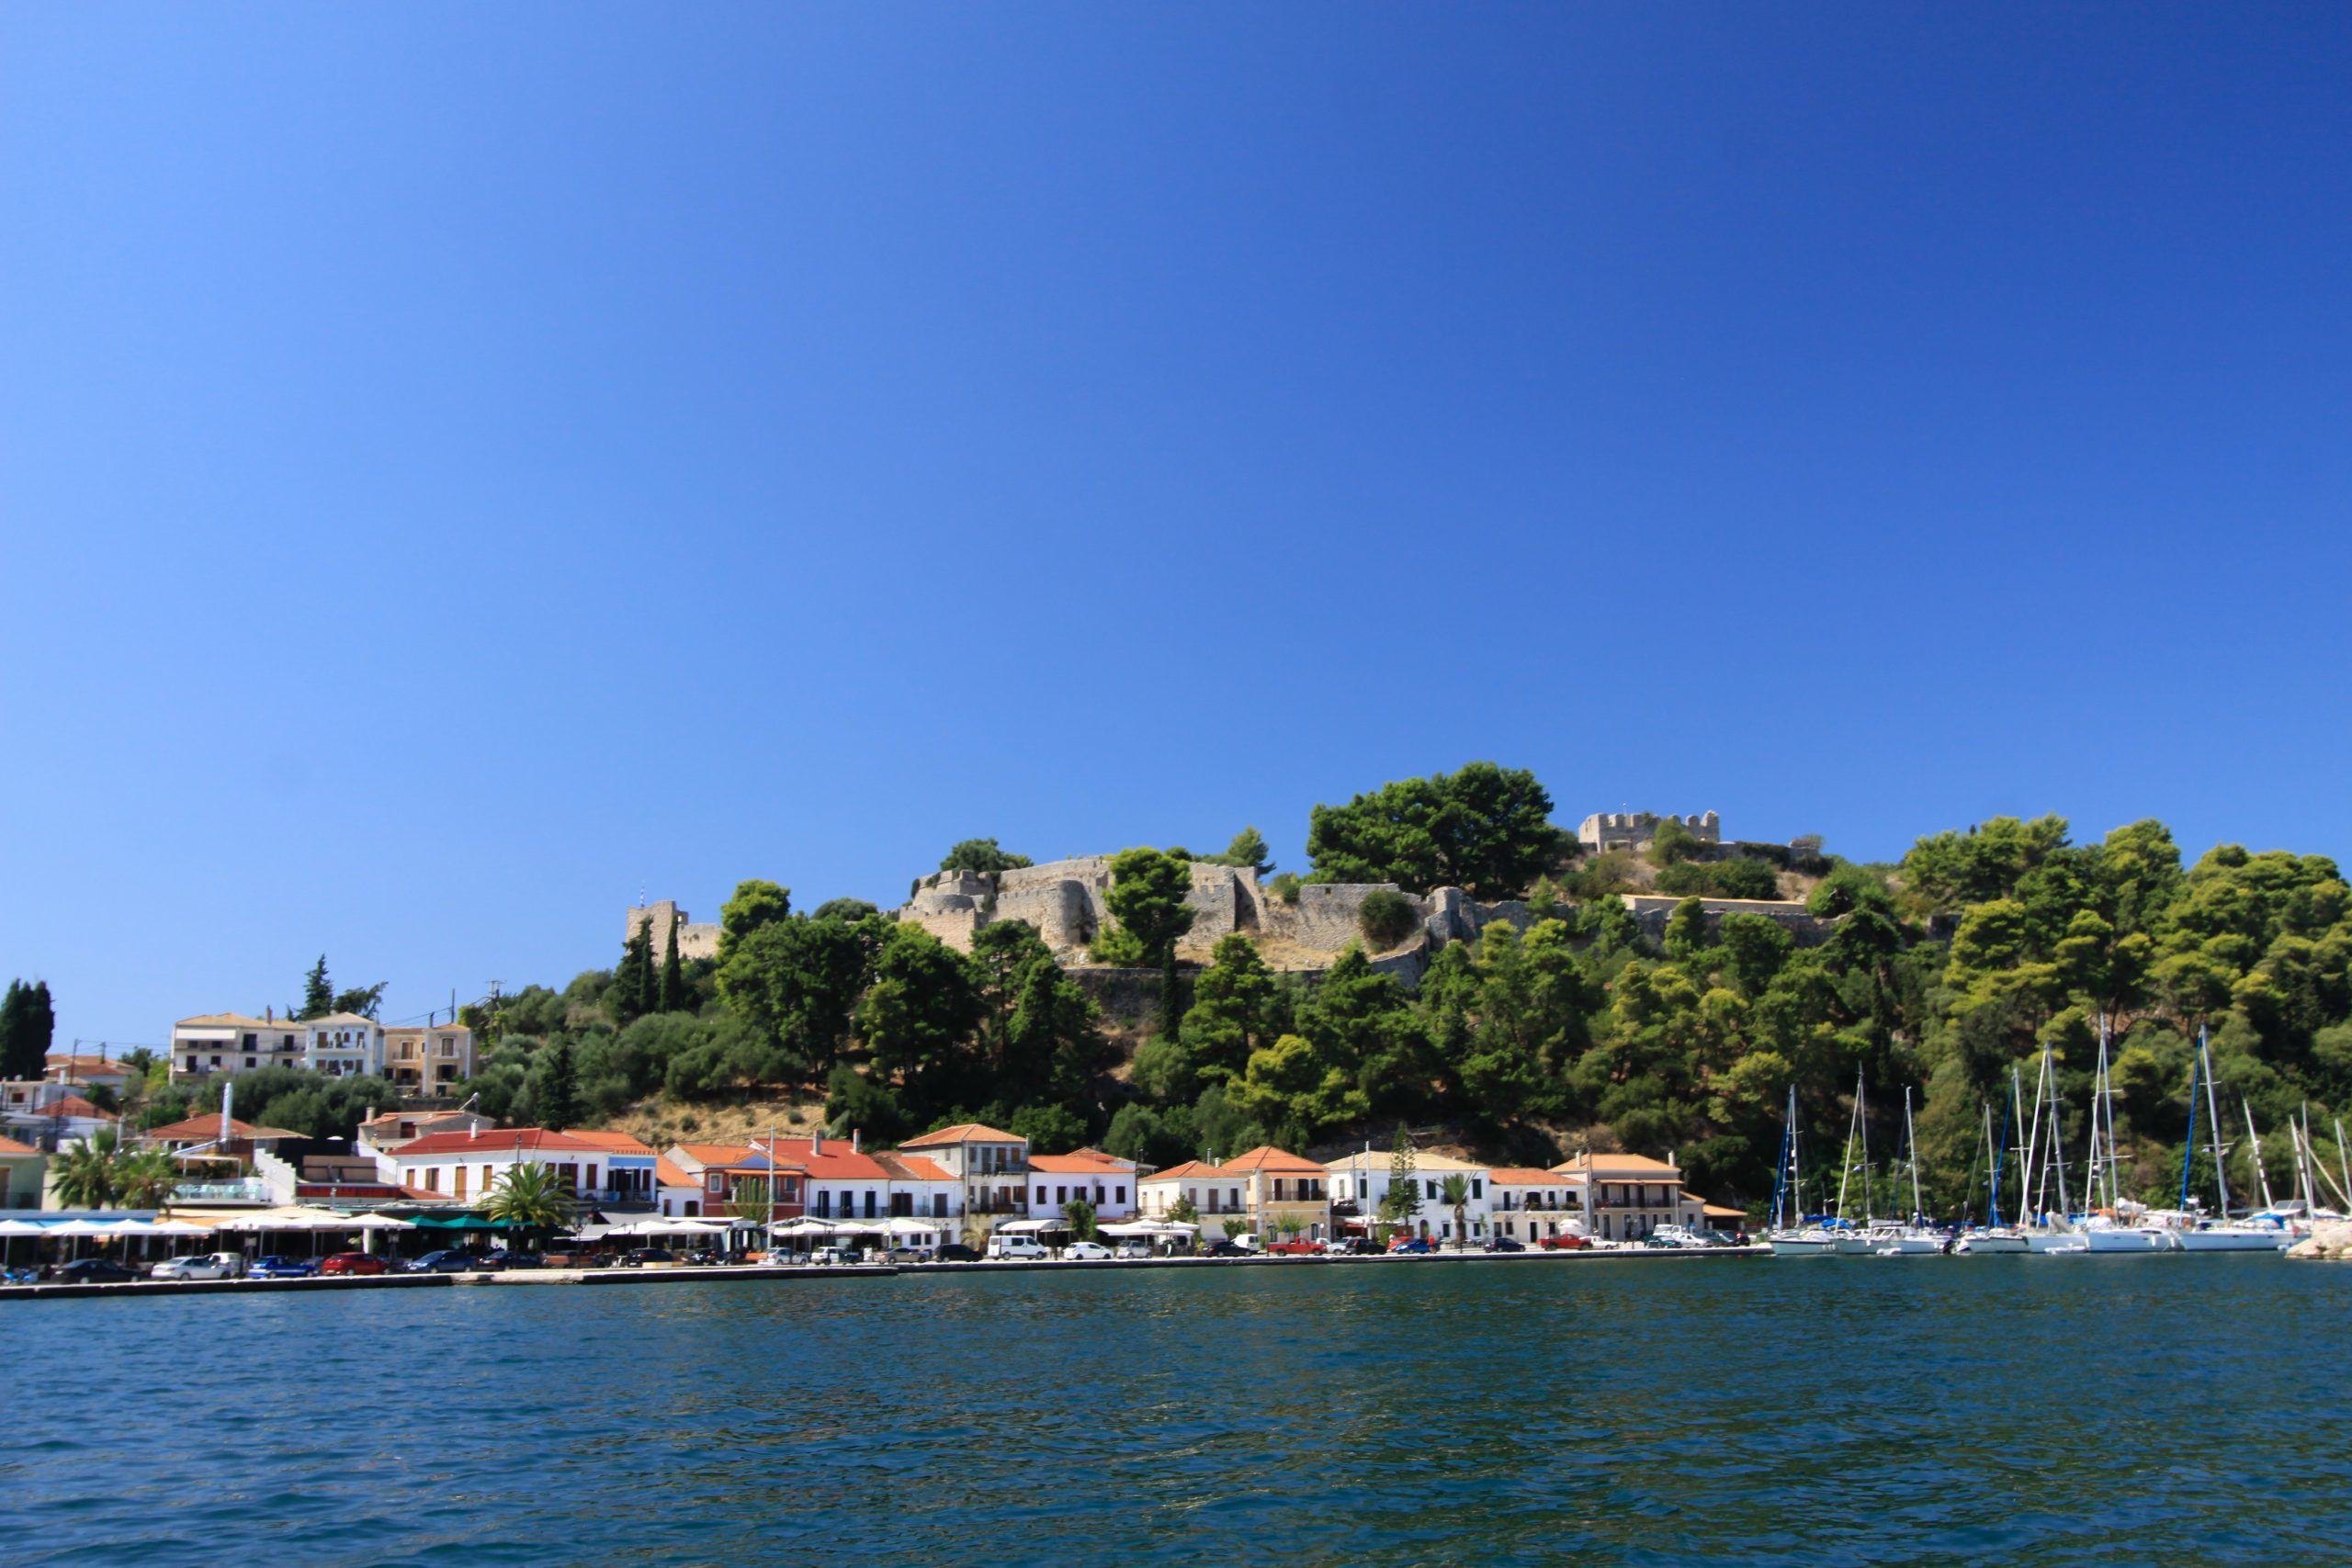 View of Vonitsa harbour from the boat